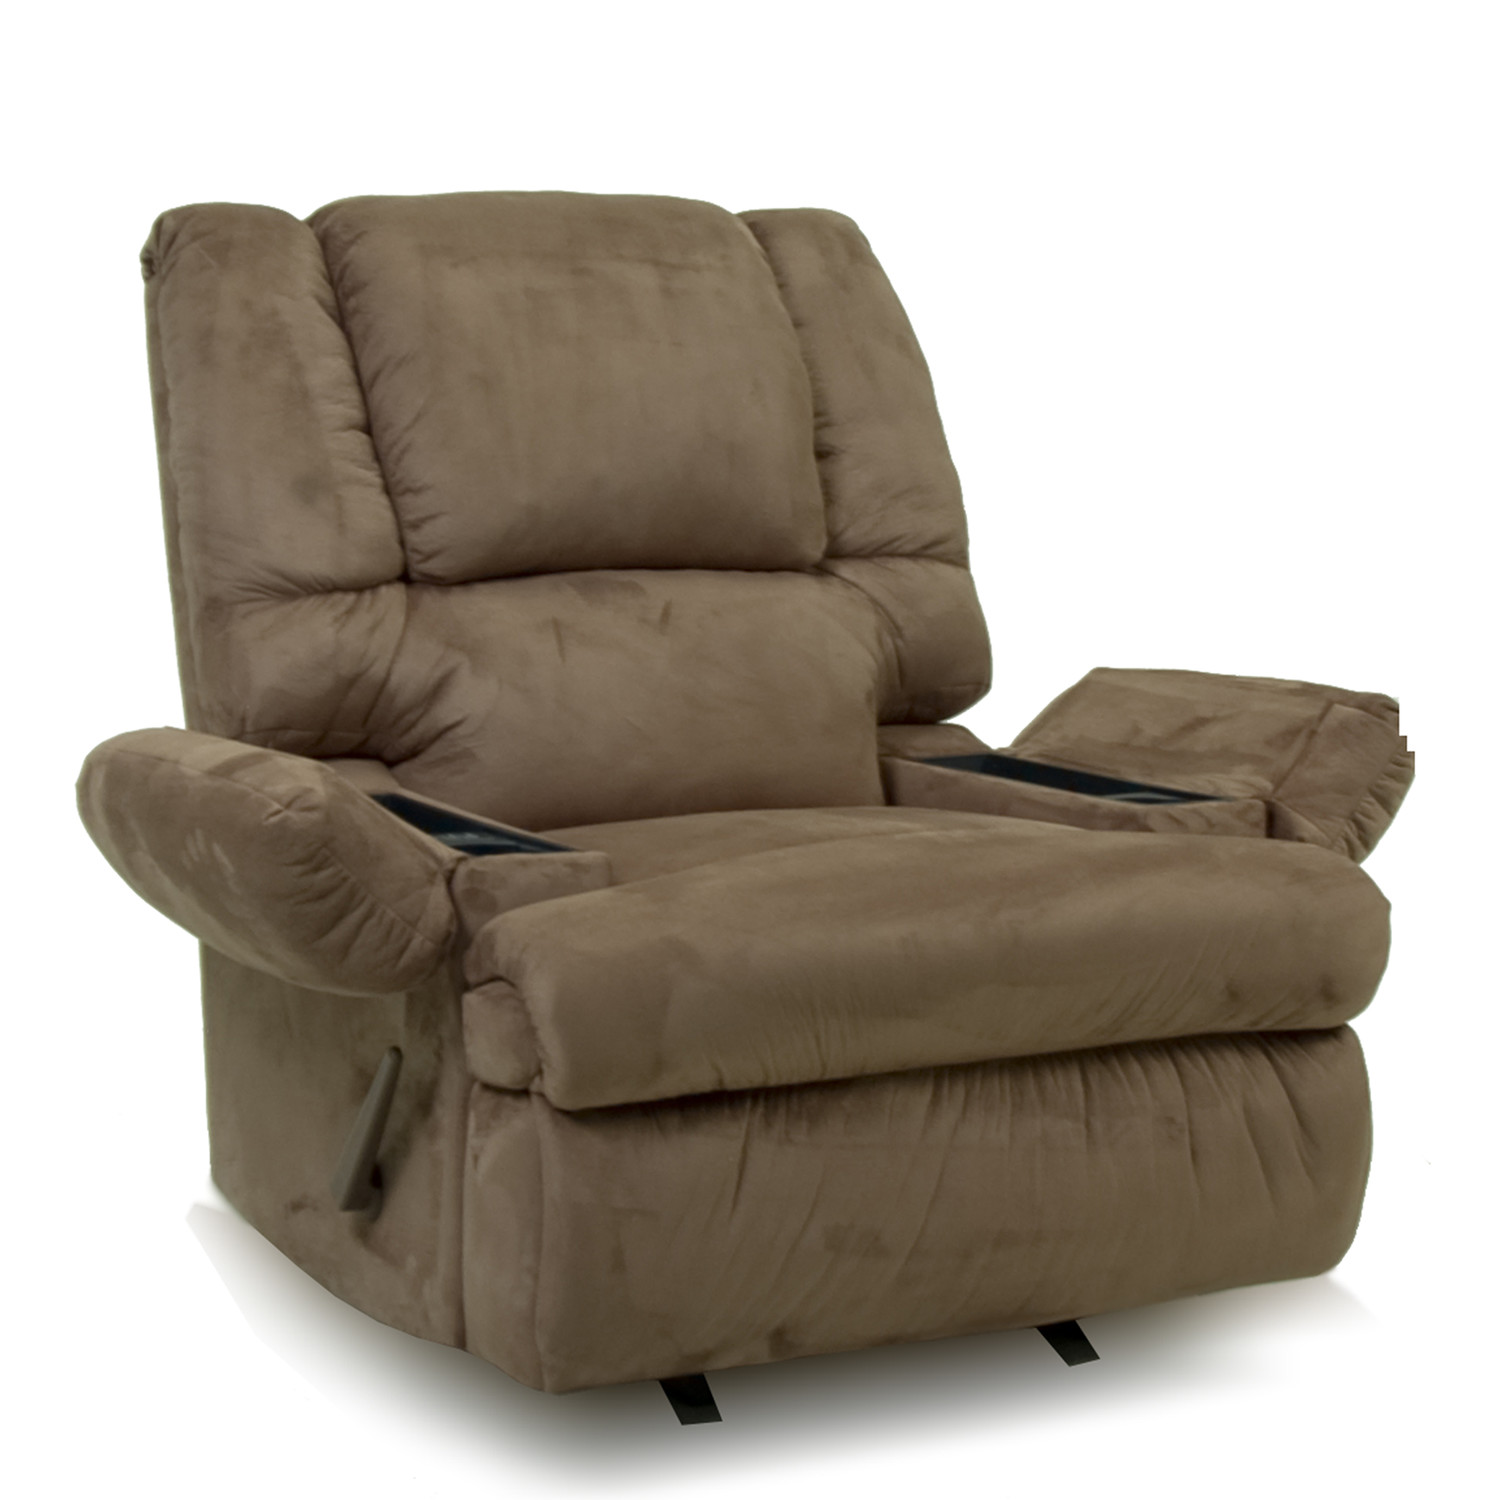 Svago Chair Most Comfortable Recliner You Want To Have Homesfeed